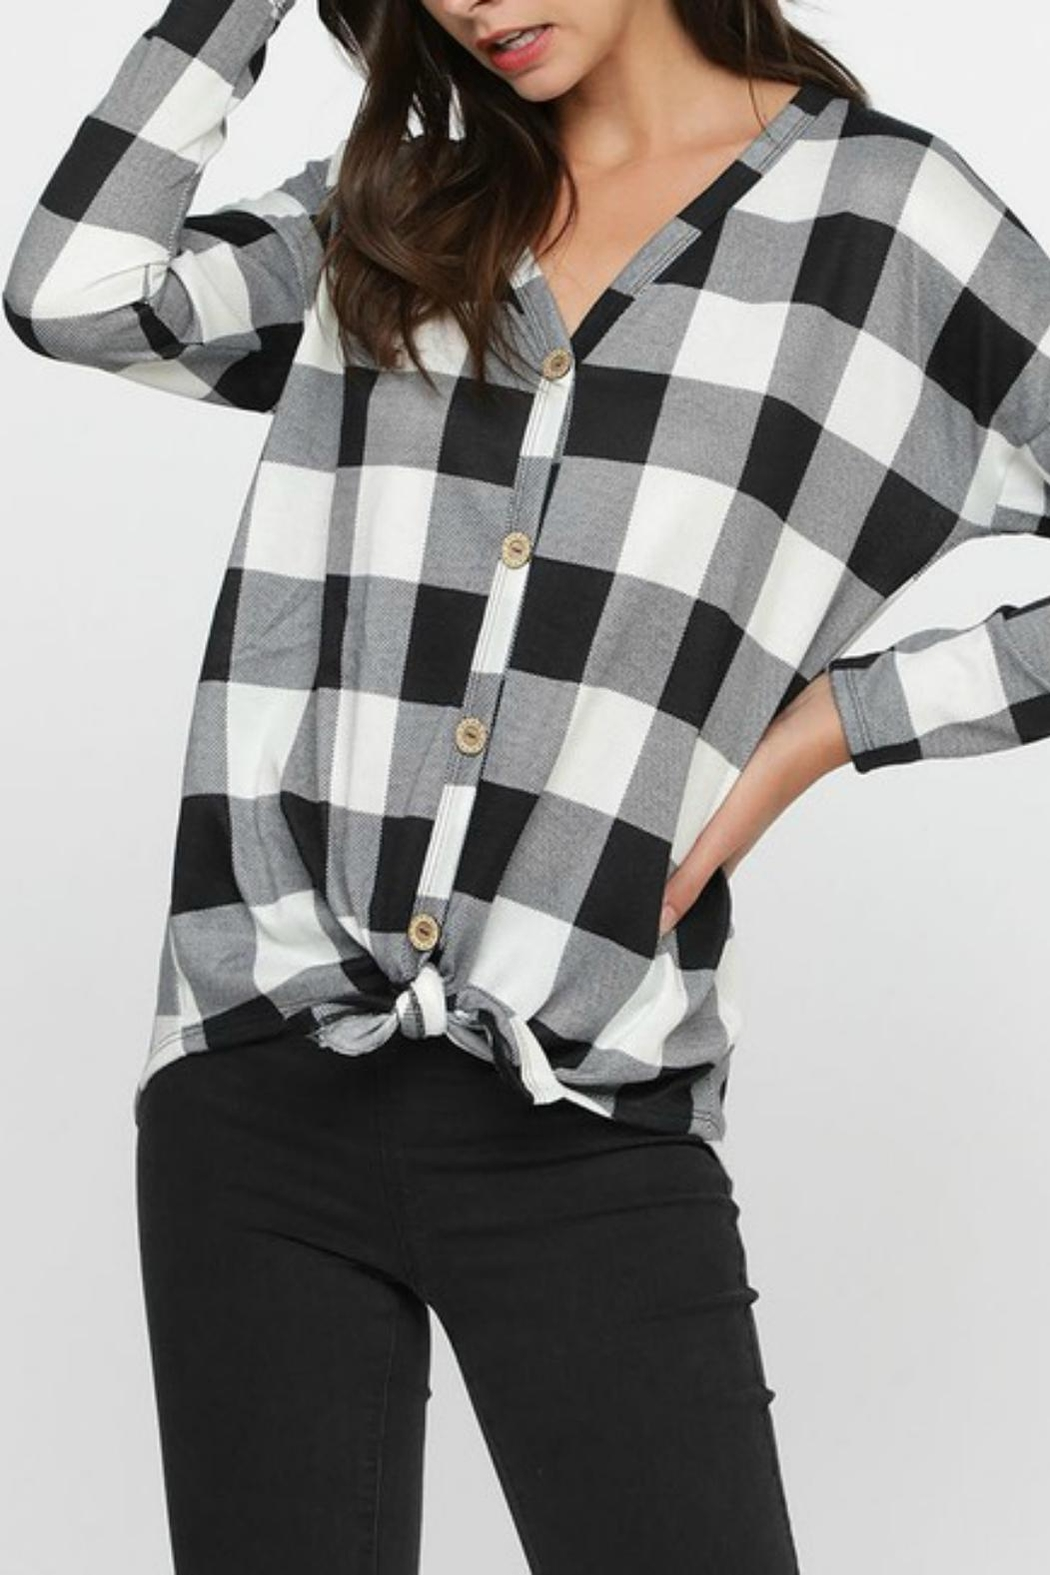 Pretty Little Things Plaid Knit Top - Front Cropped Image